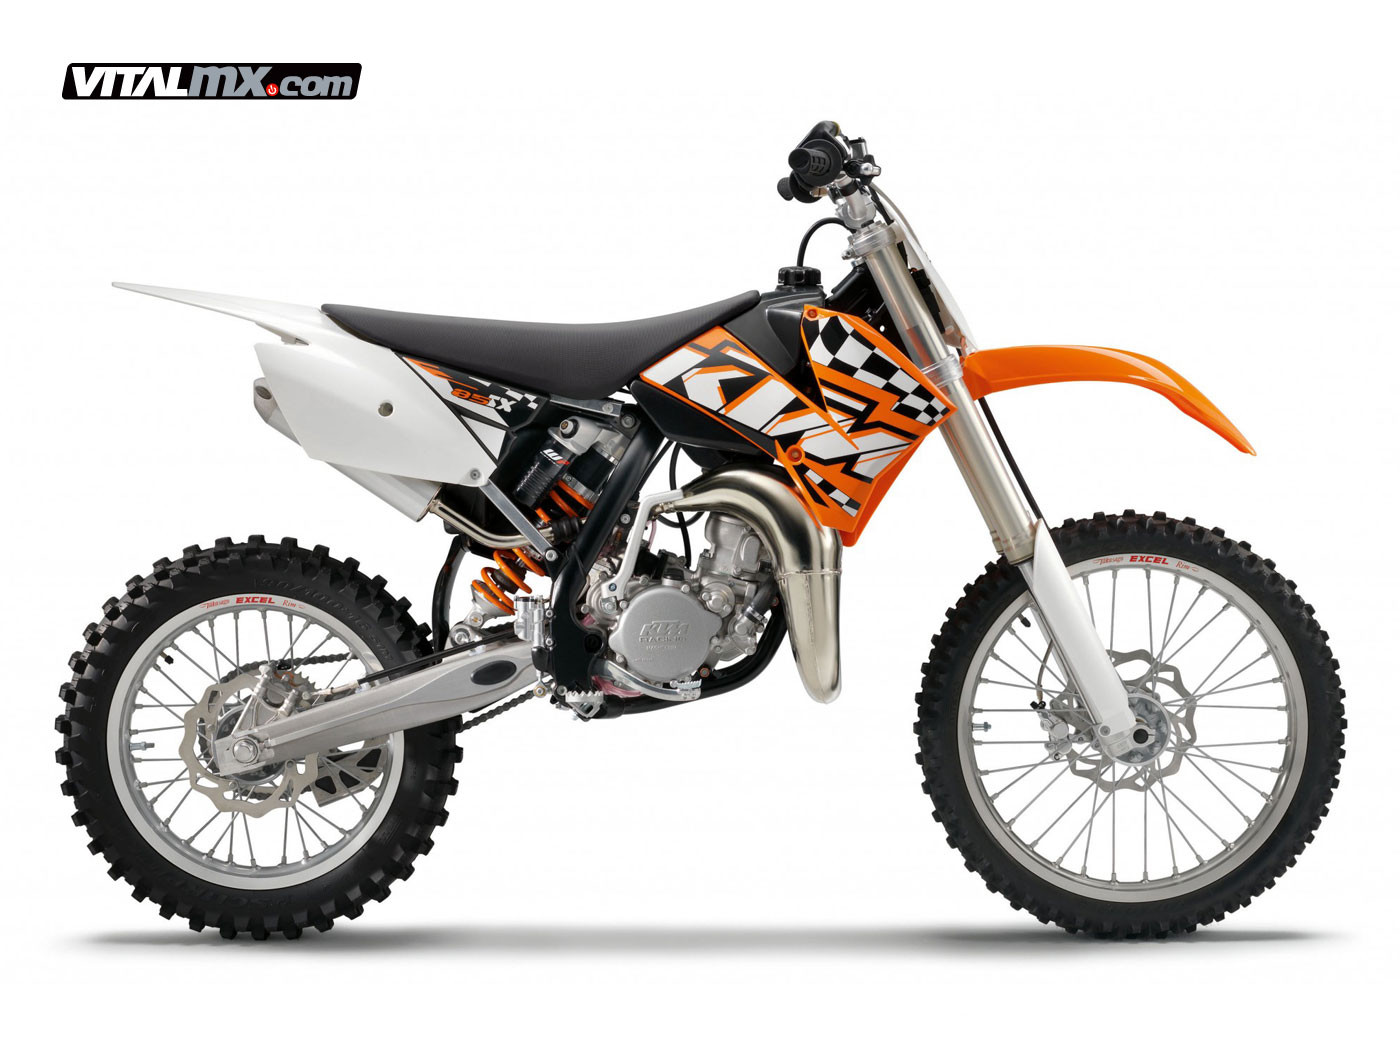 2011 ktm 85 2011 ktm wallpapers motocross pictures. Black Bedroom Furniture Sets. Home Design Ideas